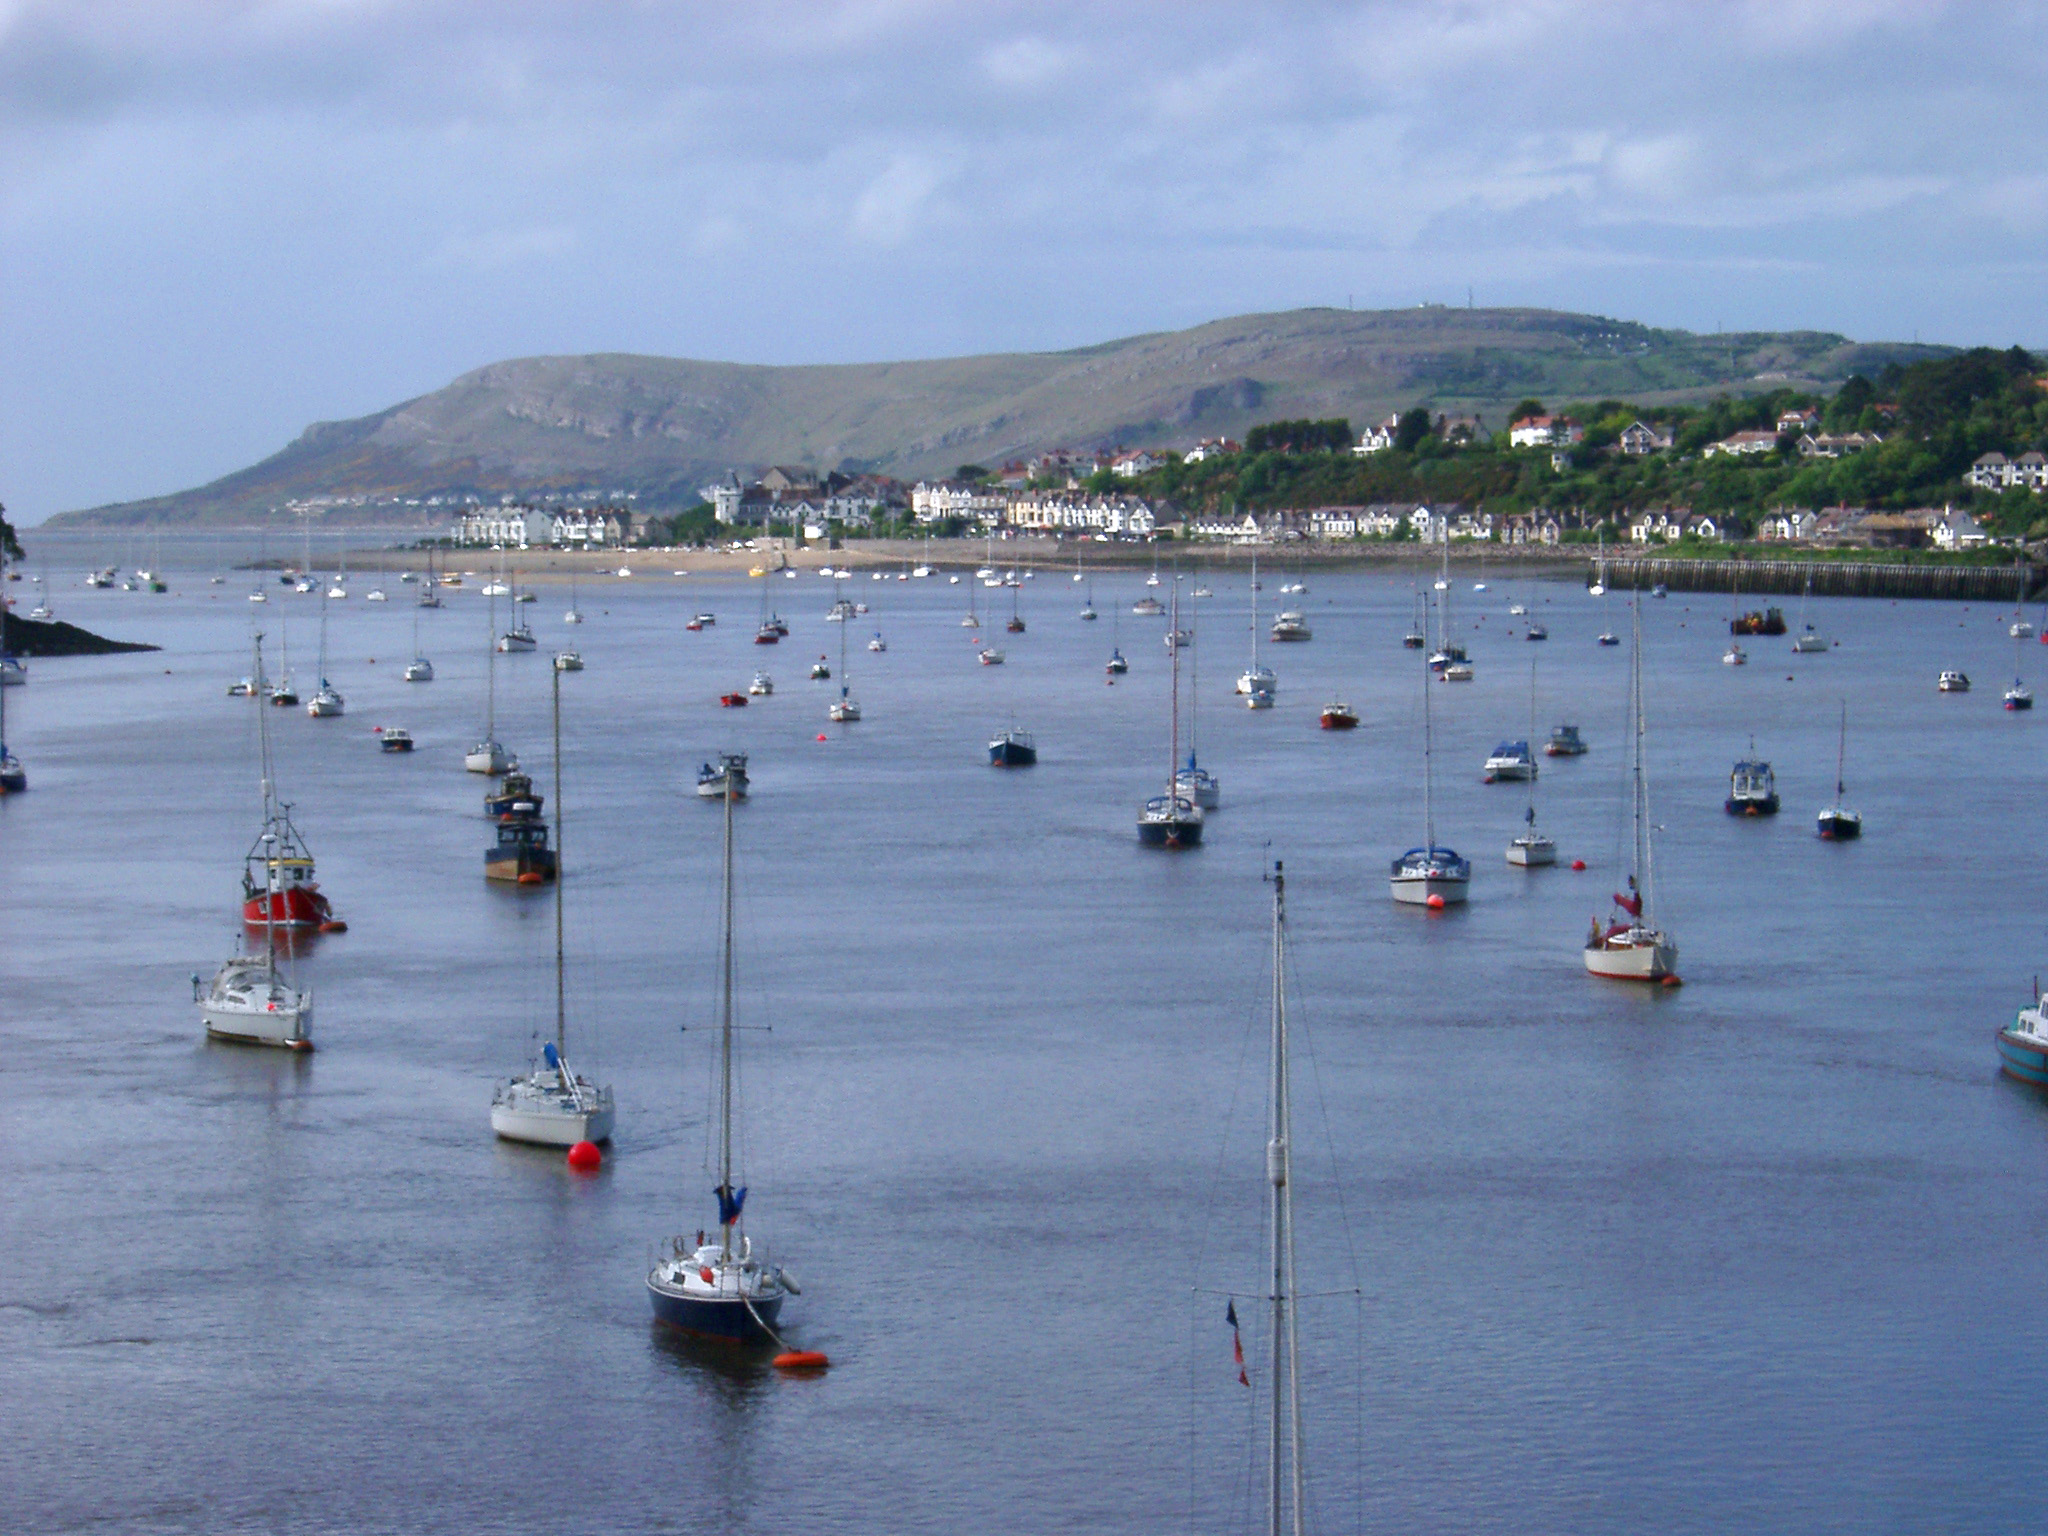 Various Small Boats at Anchor at Famous River Conwy, Wales. Captured with Mountains View Afar.